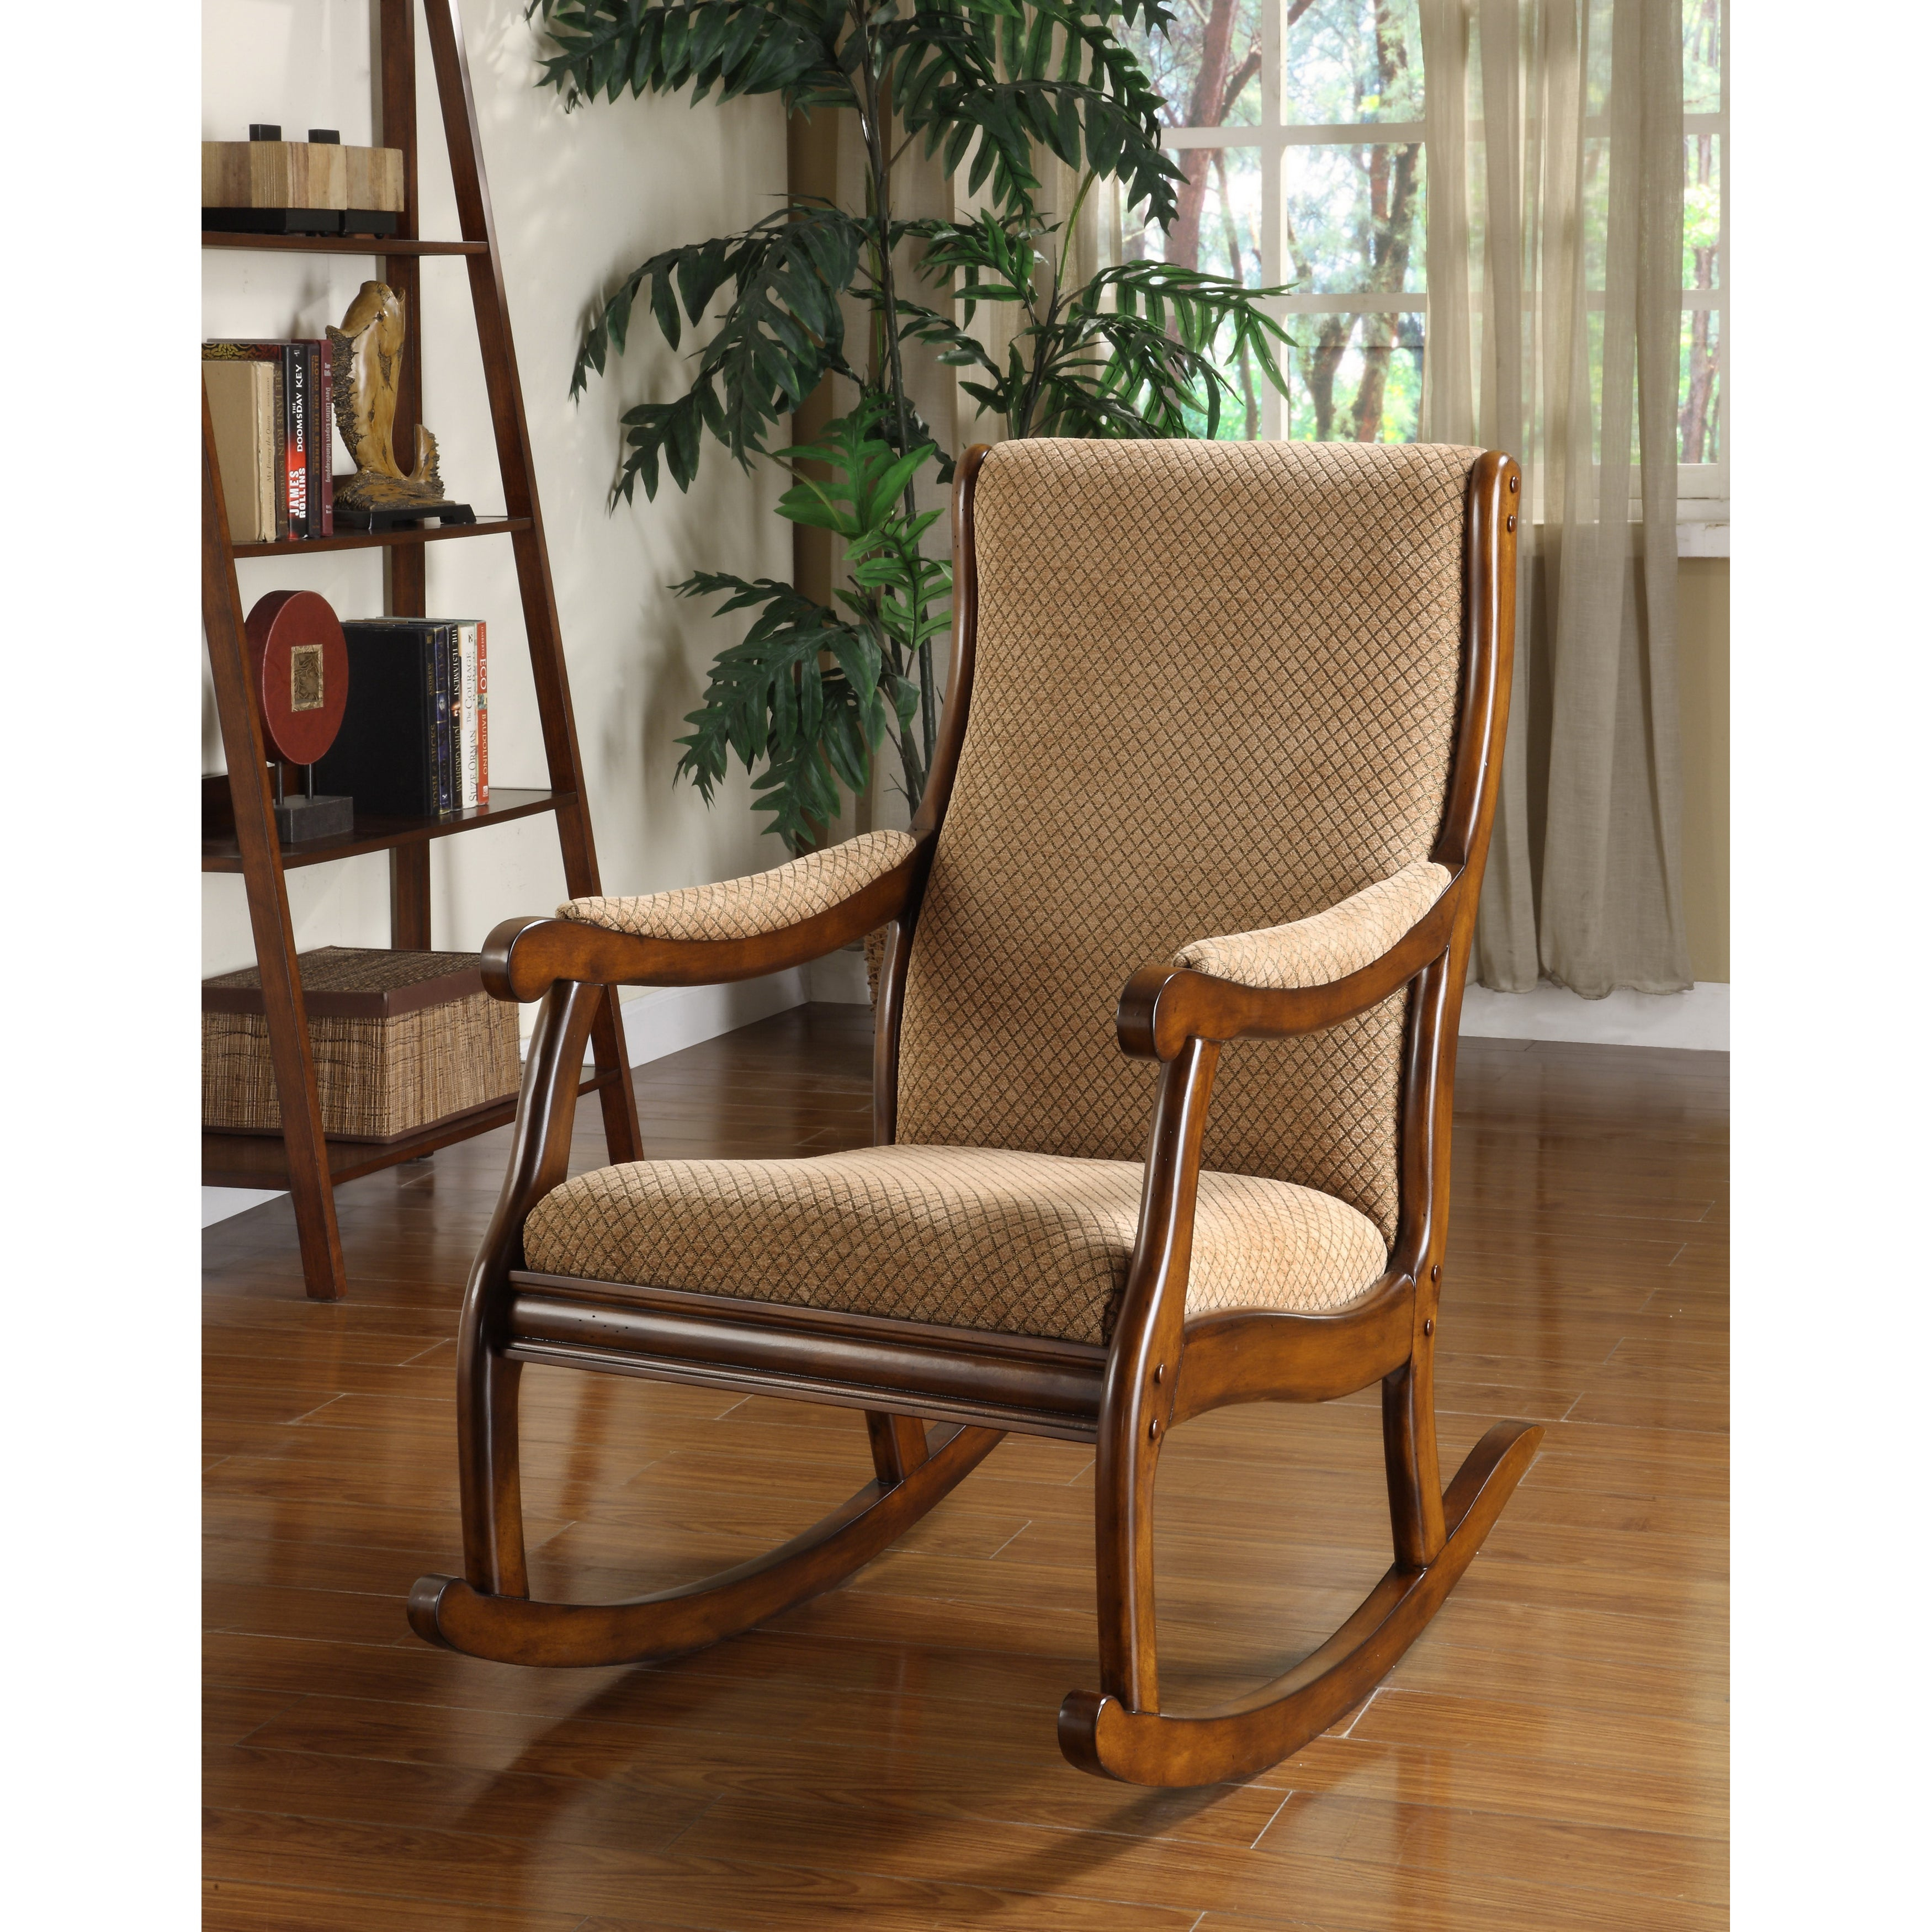 Antique Transitional Warm Oak Rocking Chairfoa Inside Beige Fabric And Cherry Wood Rocking Chairs (View 13 of 20)